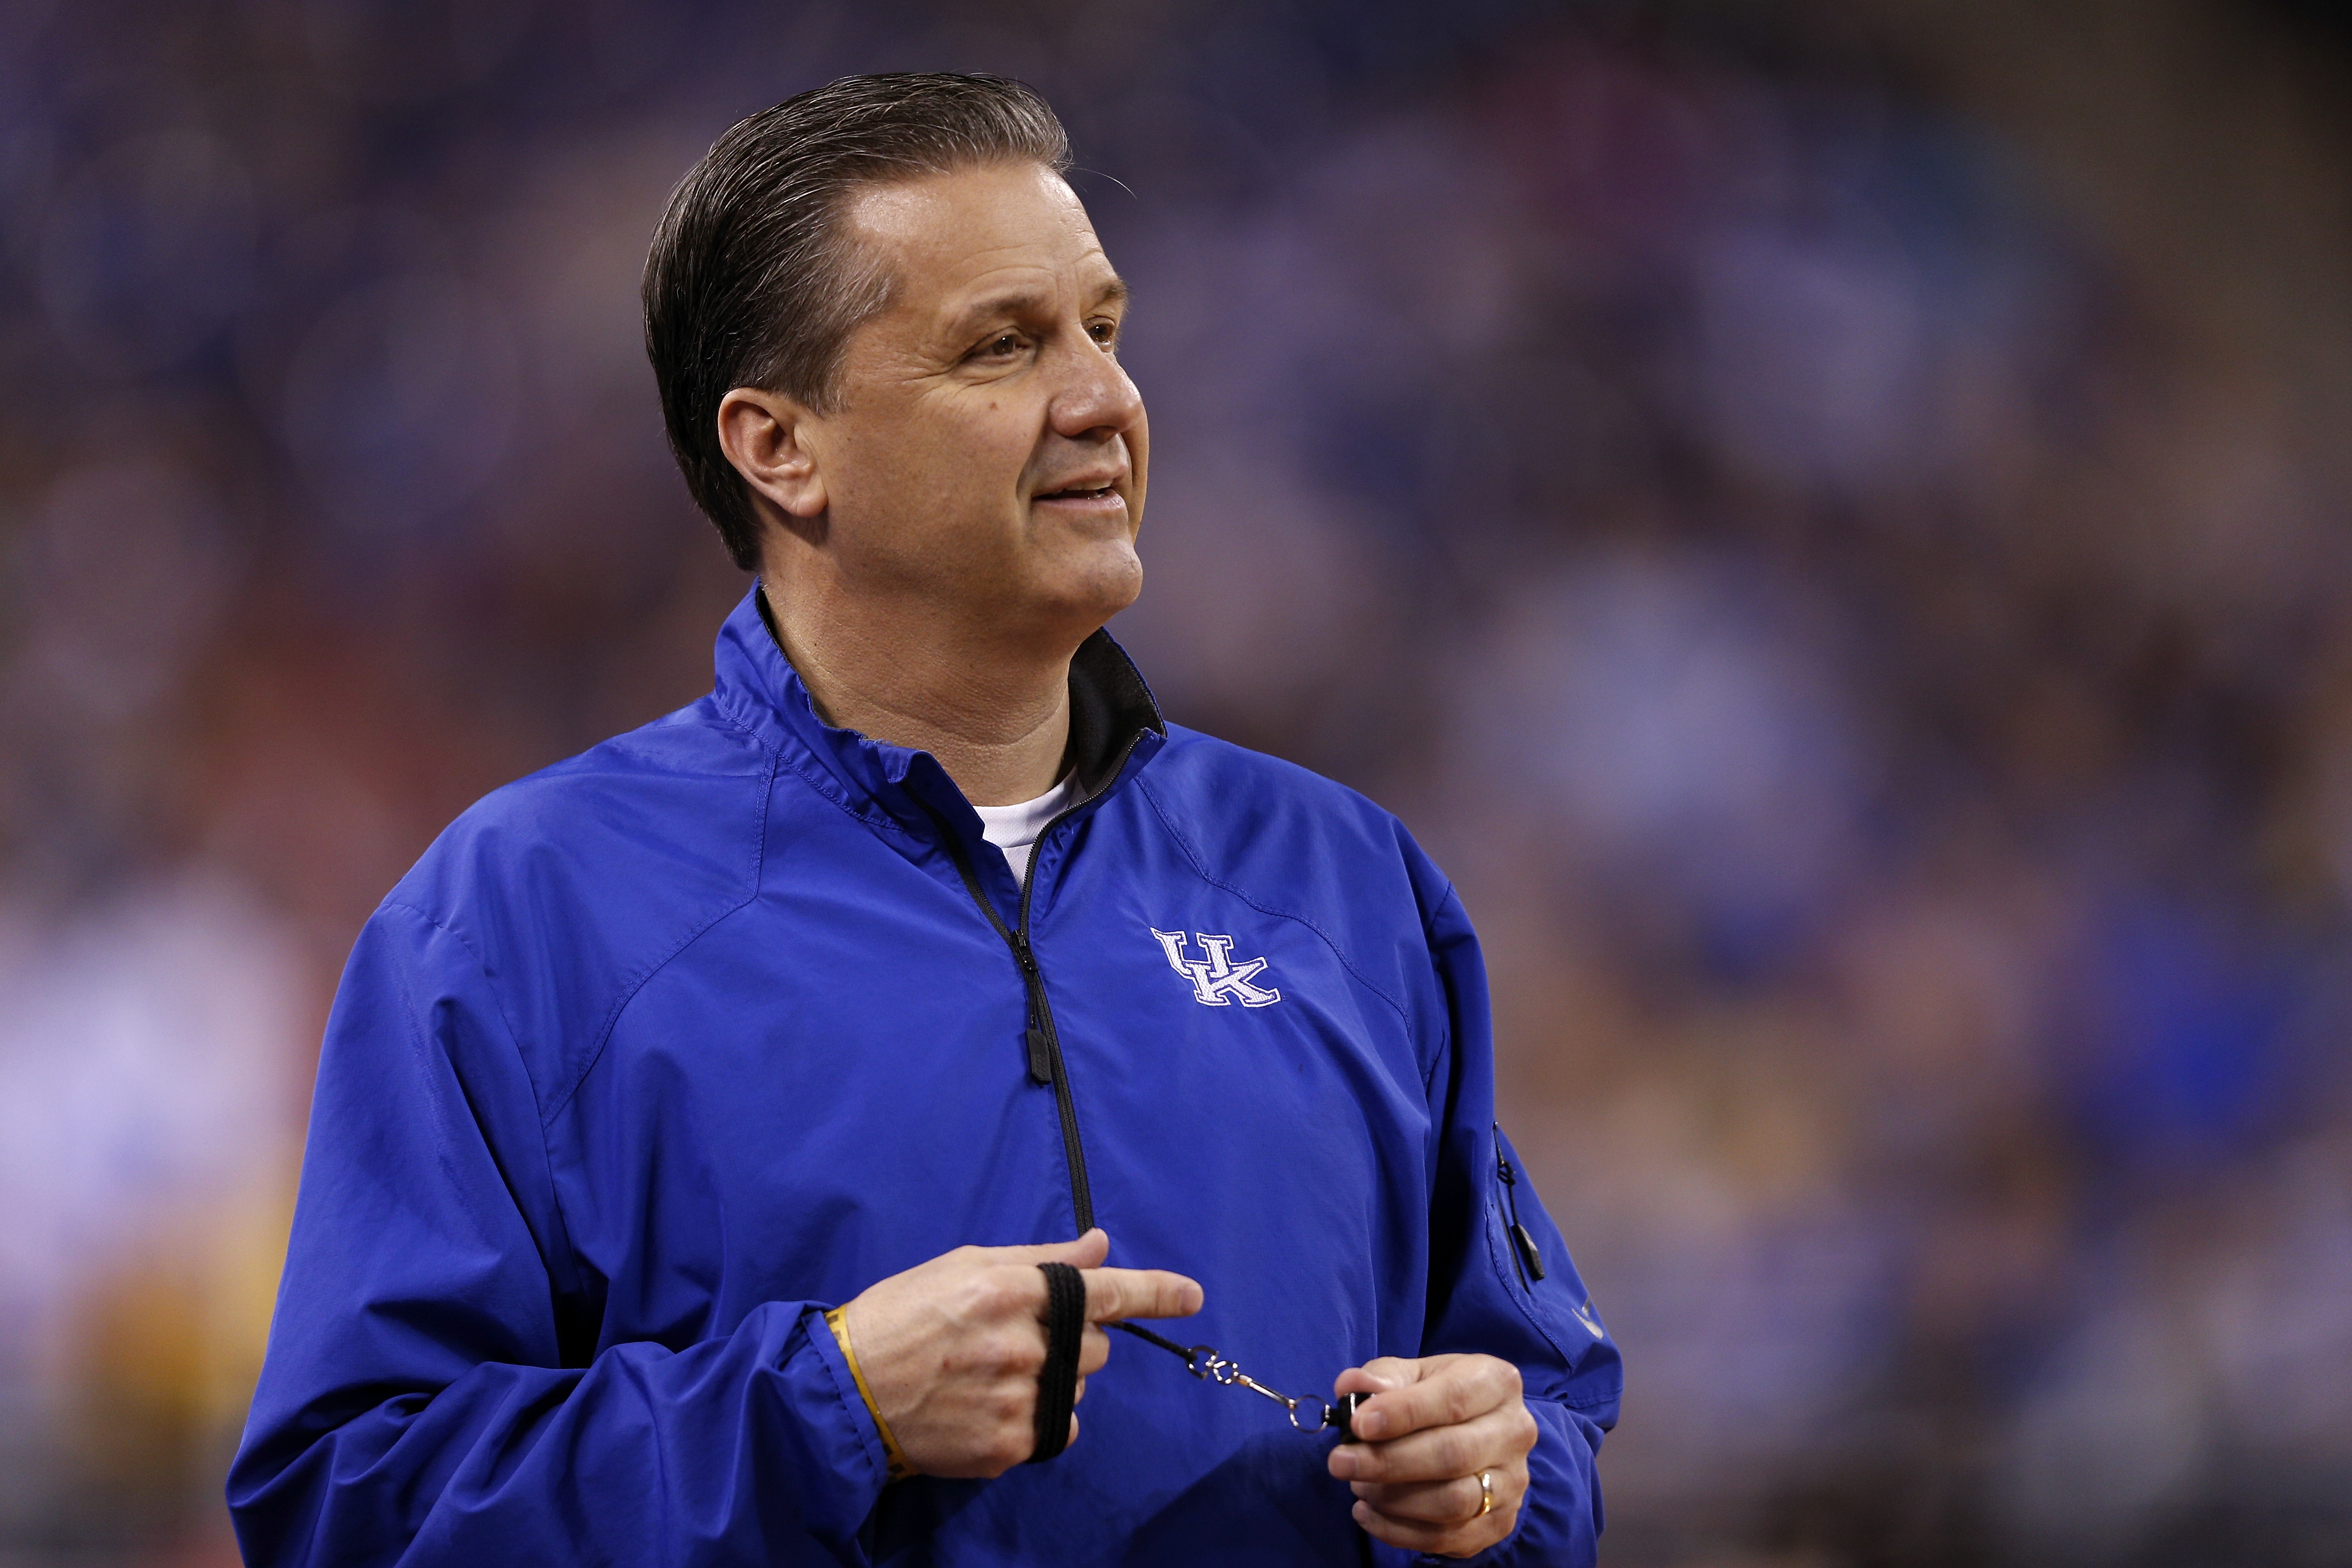 John Calipari: John Calipari Had An Adorable Exchange With A Kid Reporter